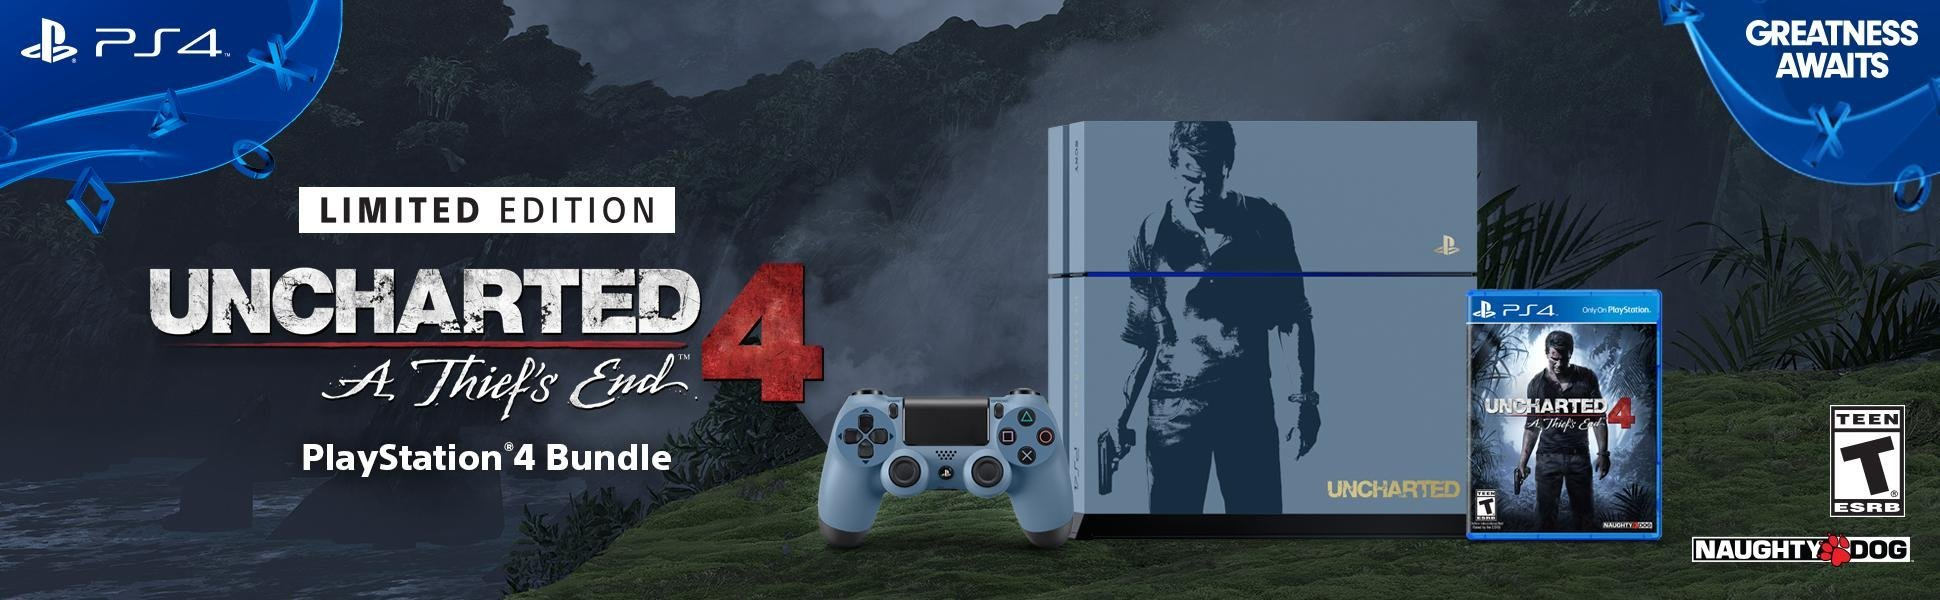 Sony Playstation 4 500gb Console Uncharted 4 Limited Edition